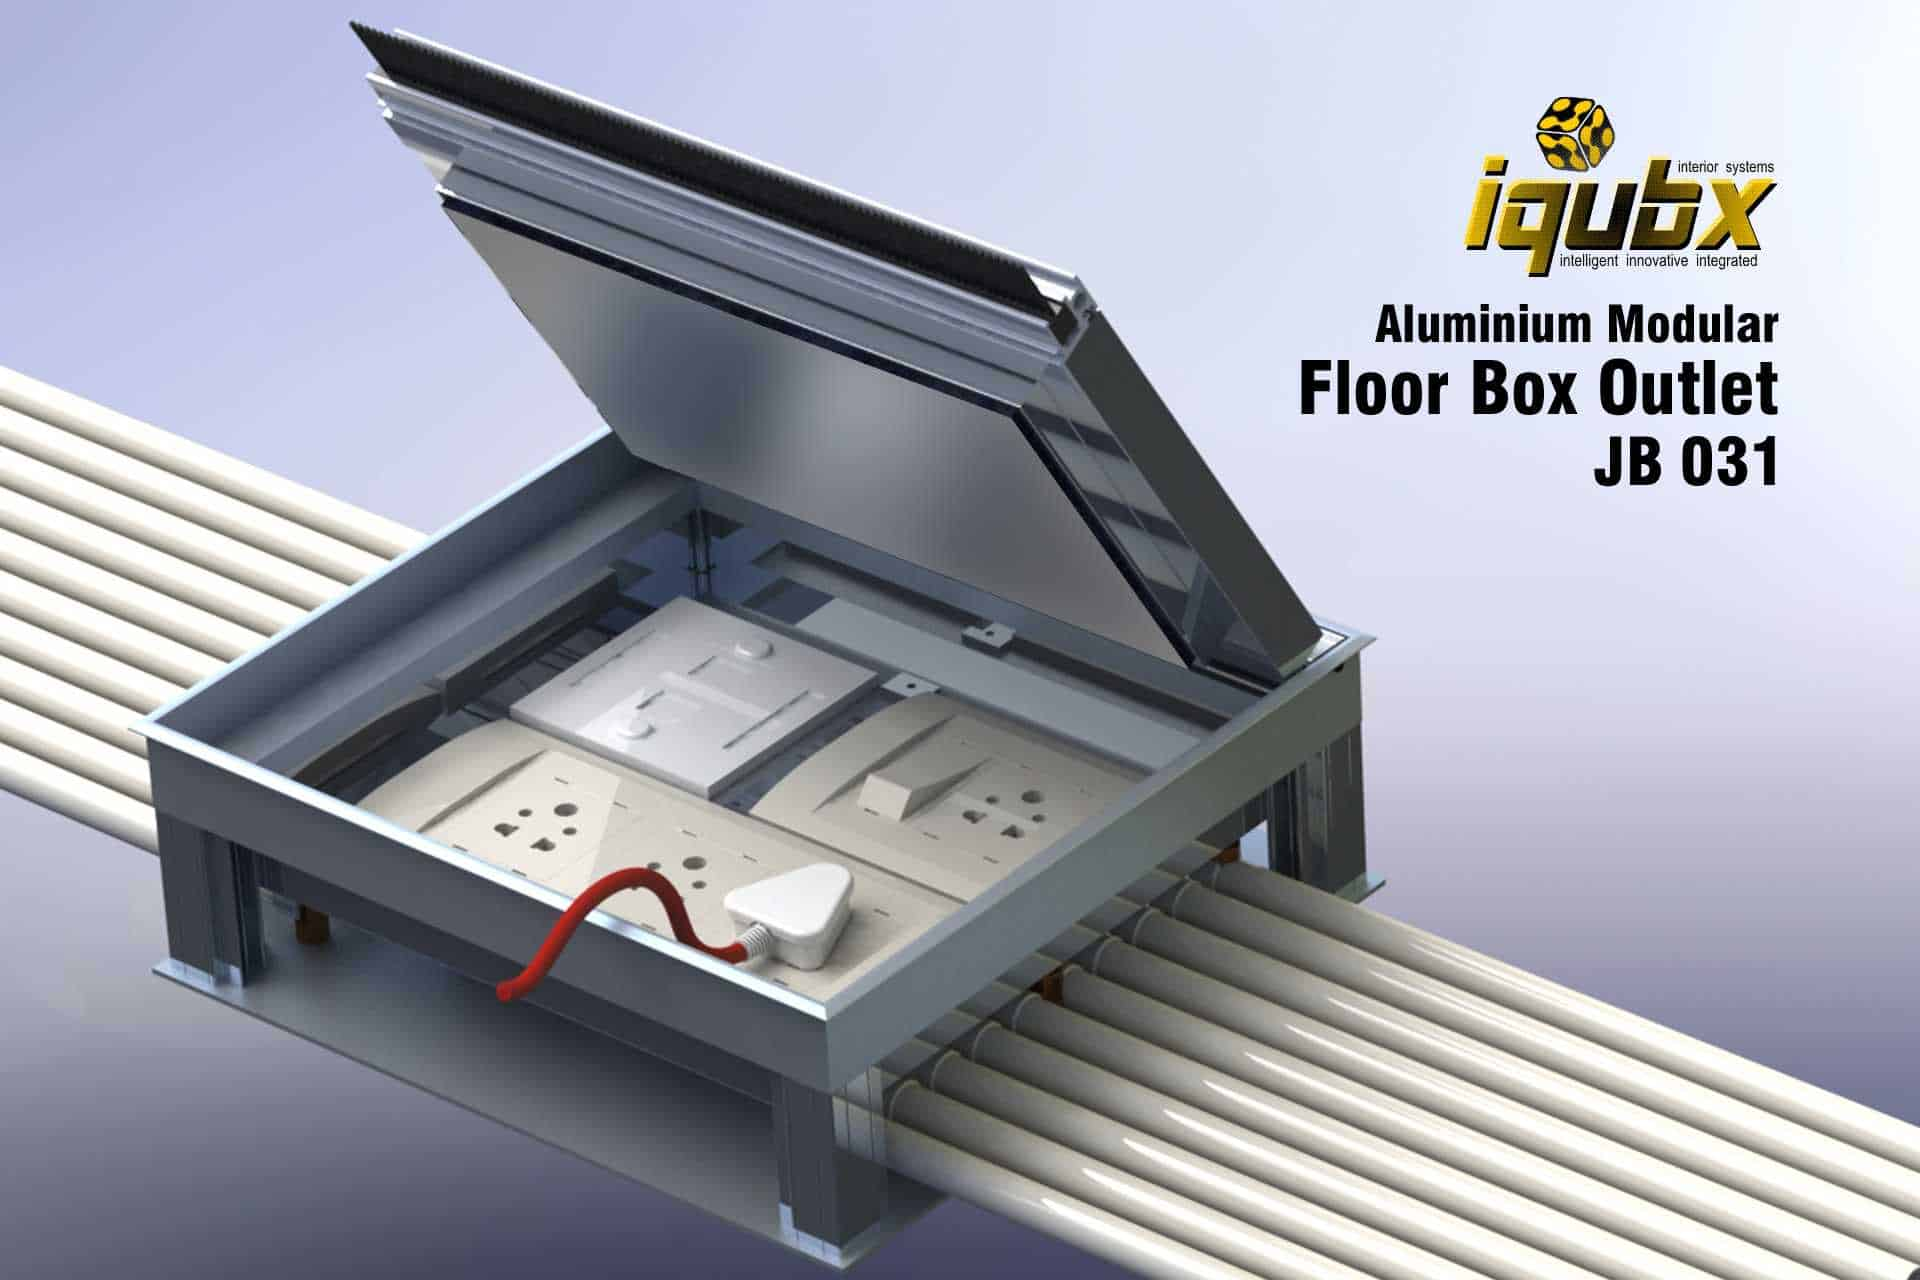 Features Of Iqubx Electrical Recessed Floor Box Outlet With Switch And  Sockets Suited For Data And Electrical Points